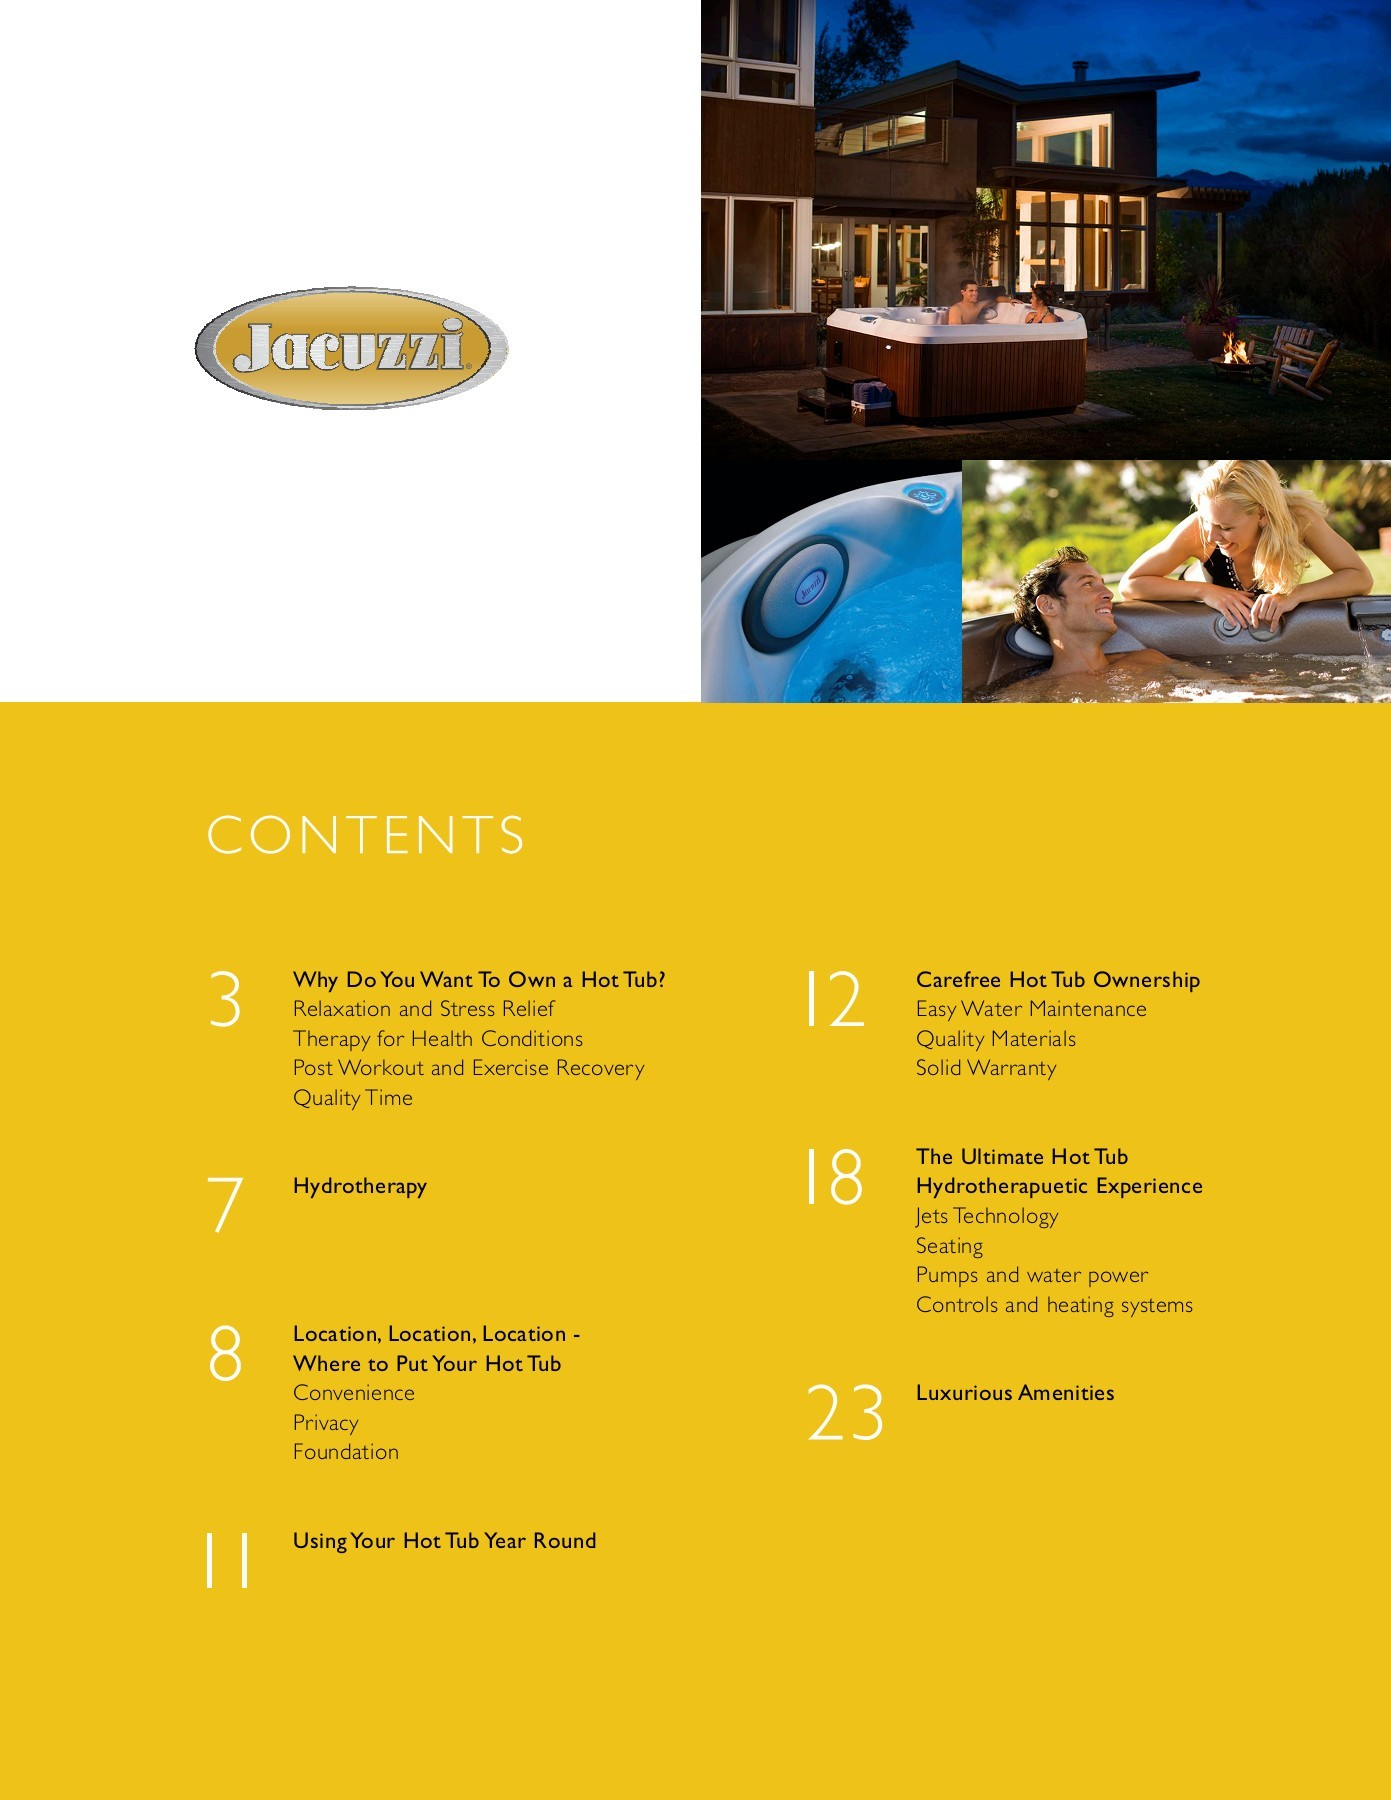 Jacuzzi Hot Tub Buyers Guide and Basic Brand Information